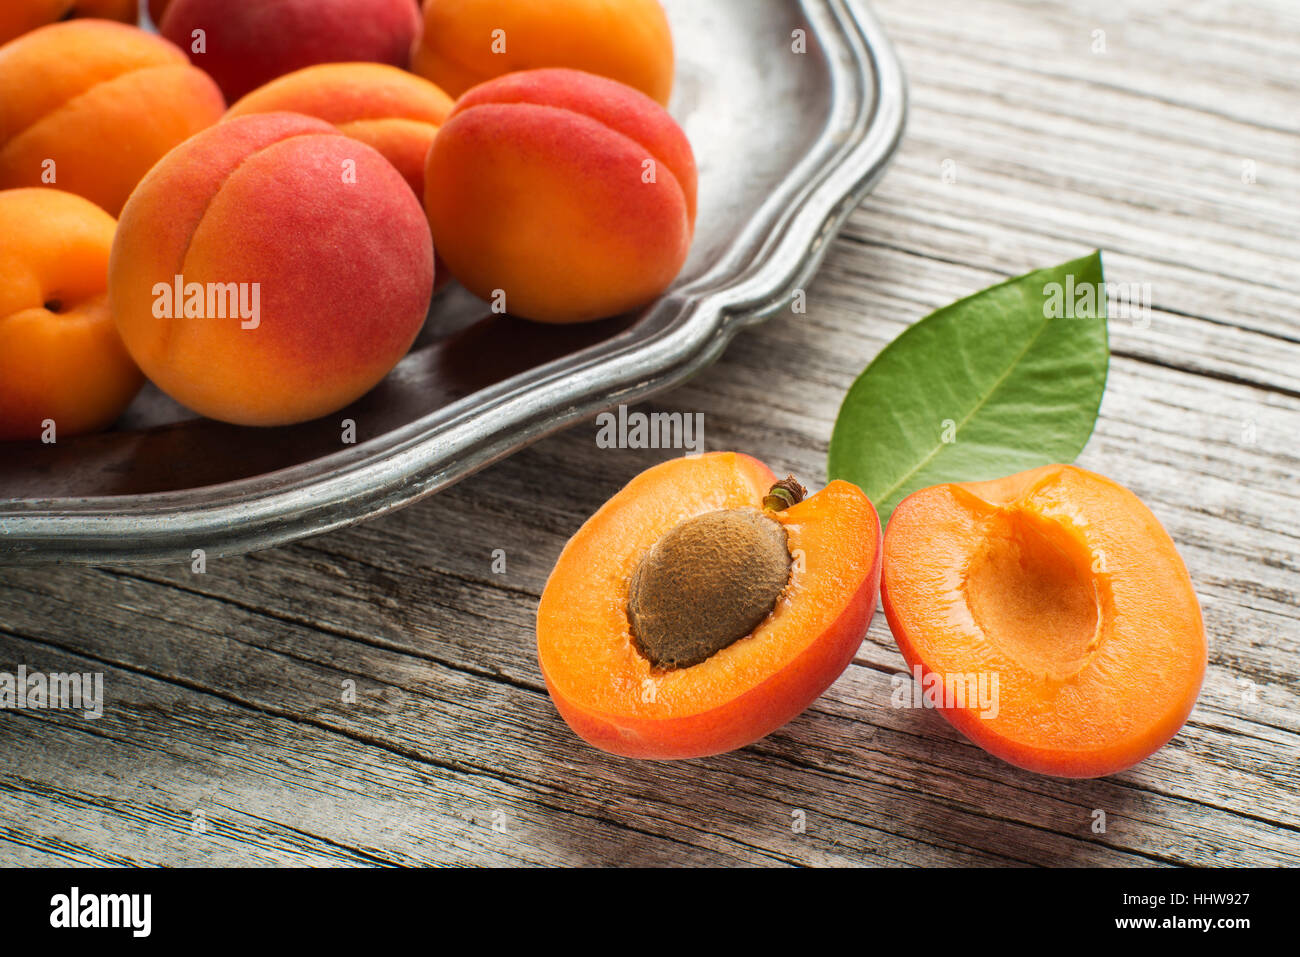 Fresh Apricots on wooden table close up - Stock Image